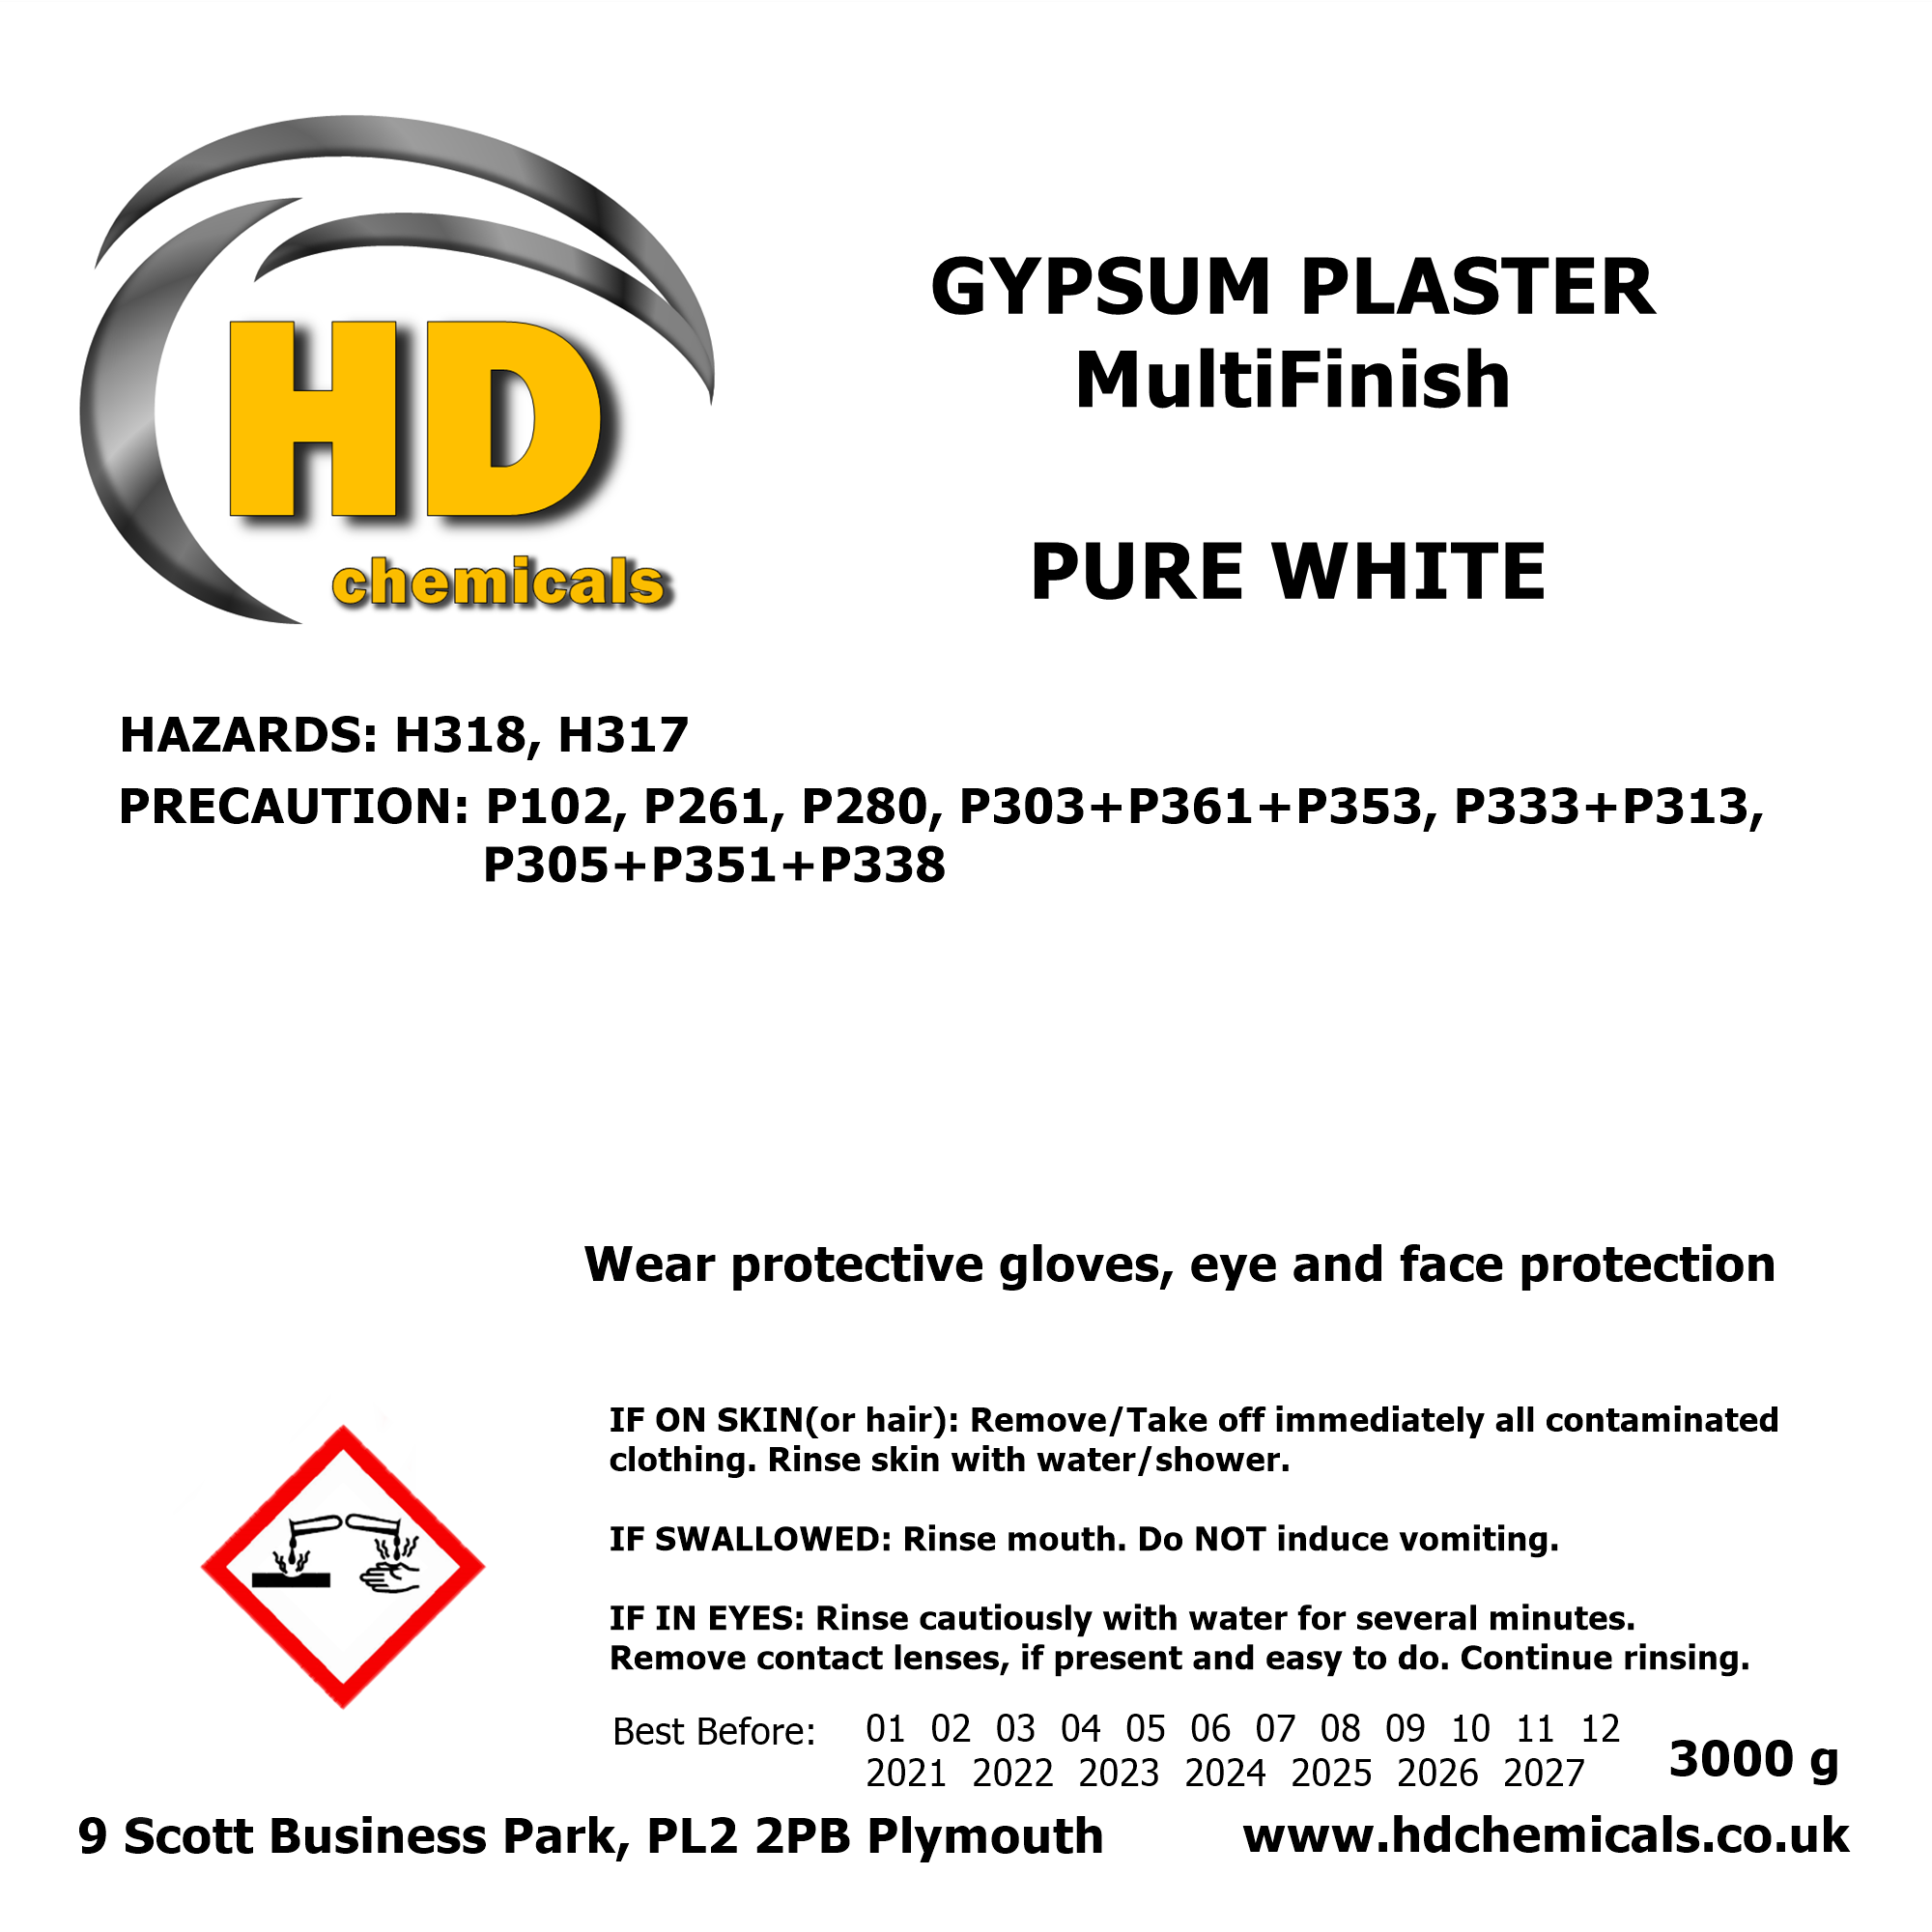 Multi Finish Gypsum Plaster